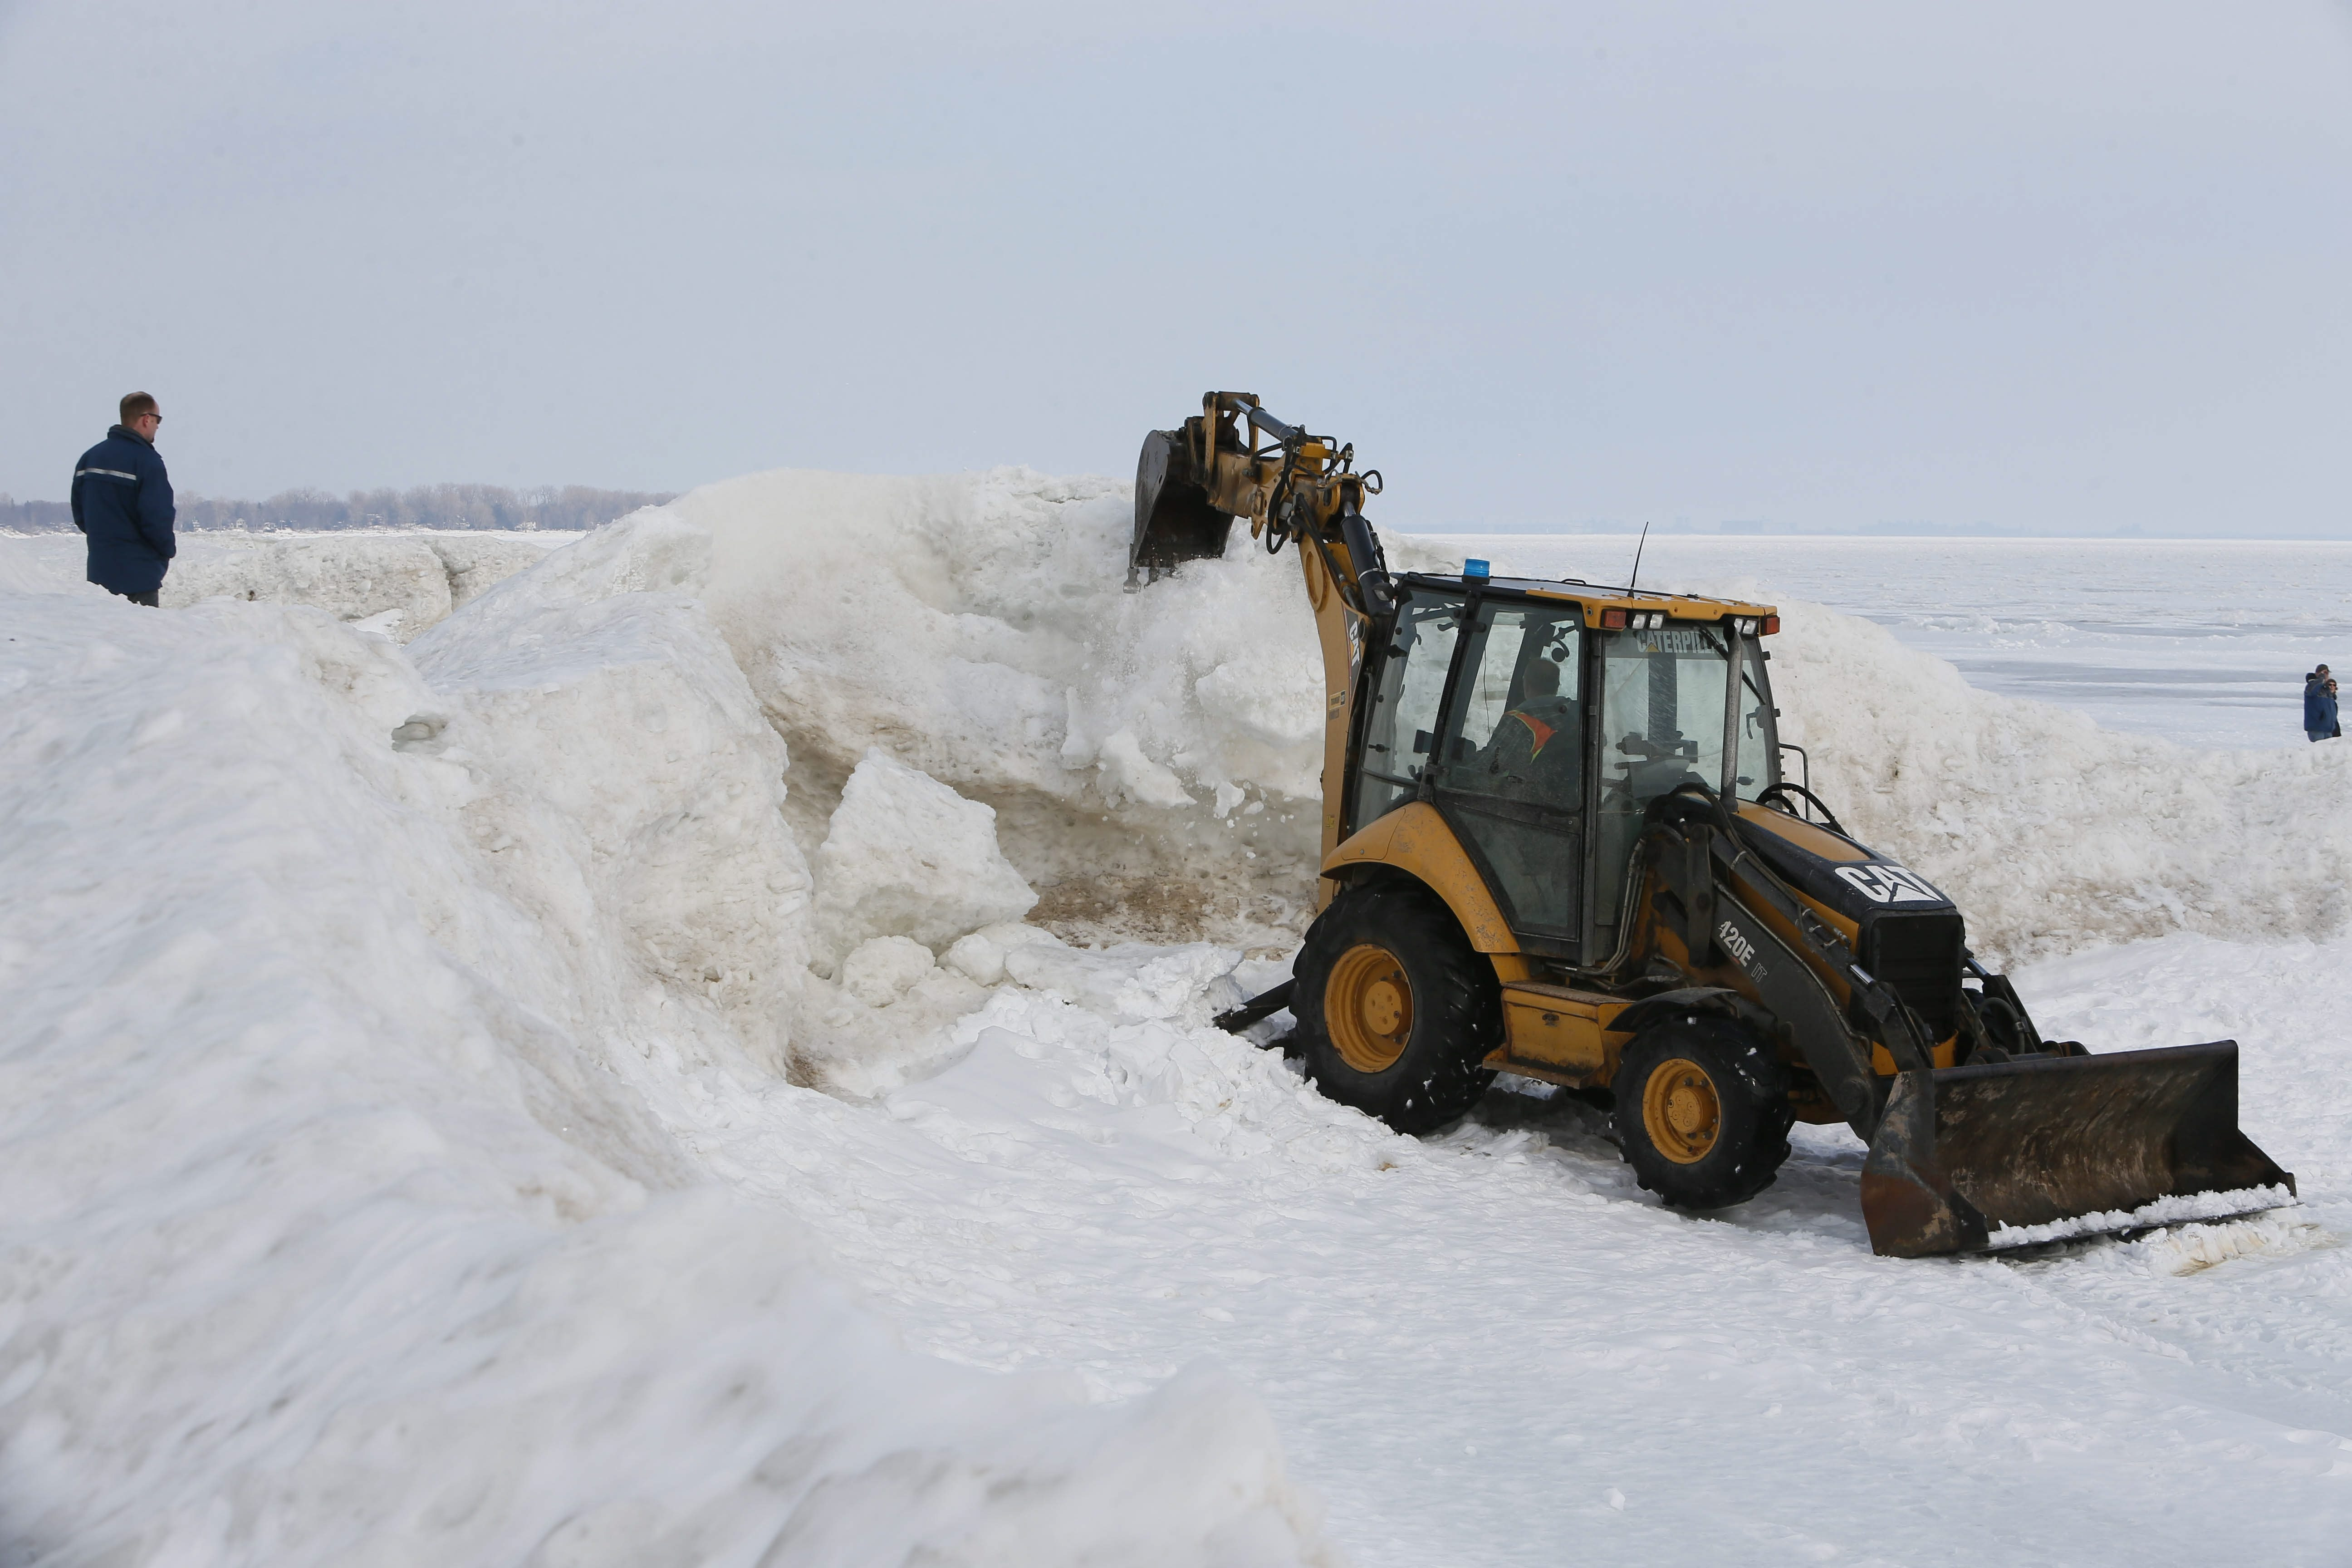 A backhoe knocks down the ice caves at Crystal Beach Wednesday after the formations had become unsafe.